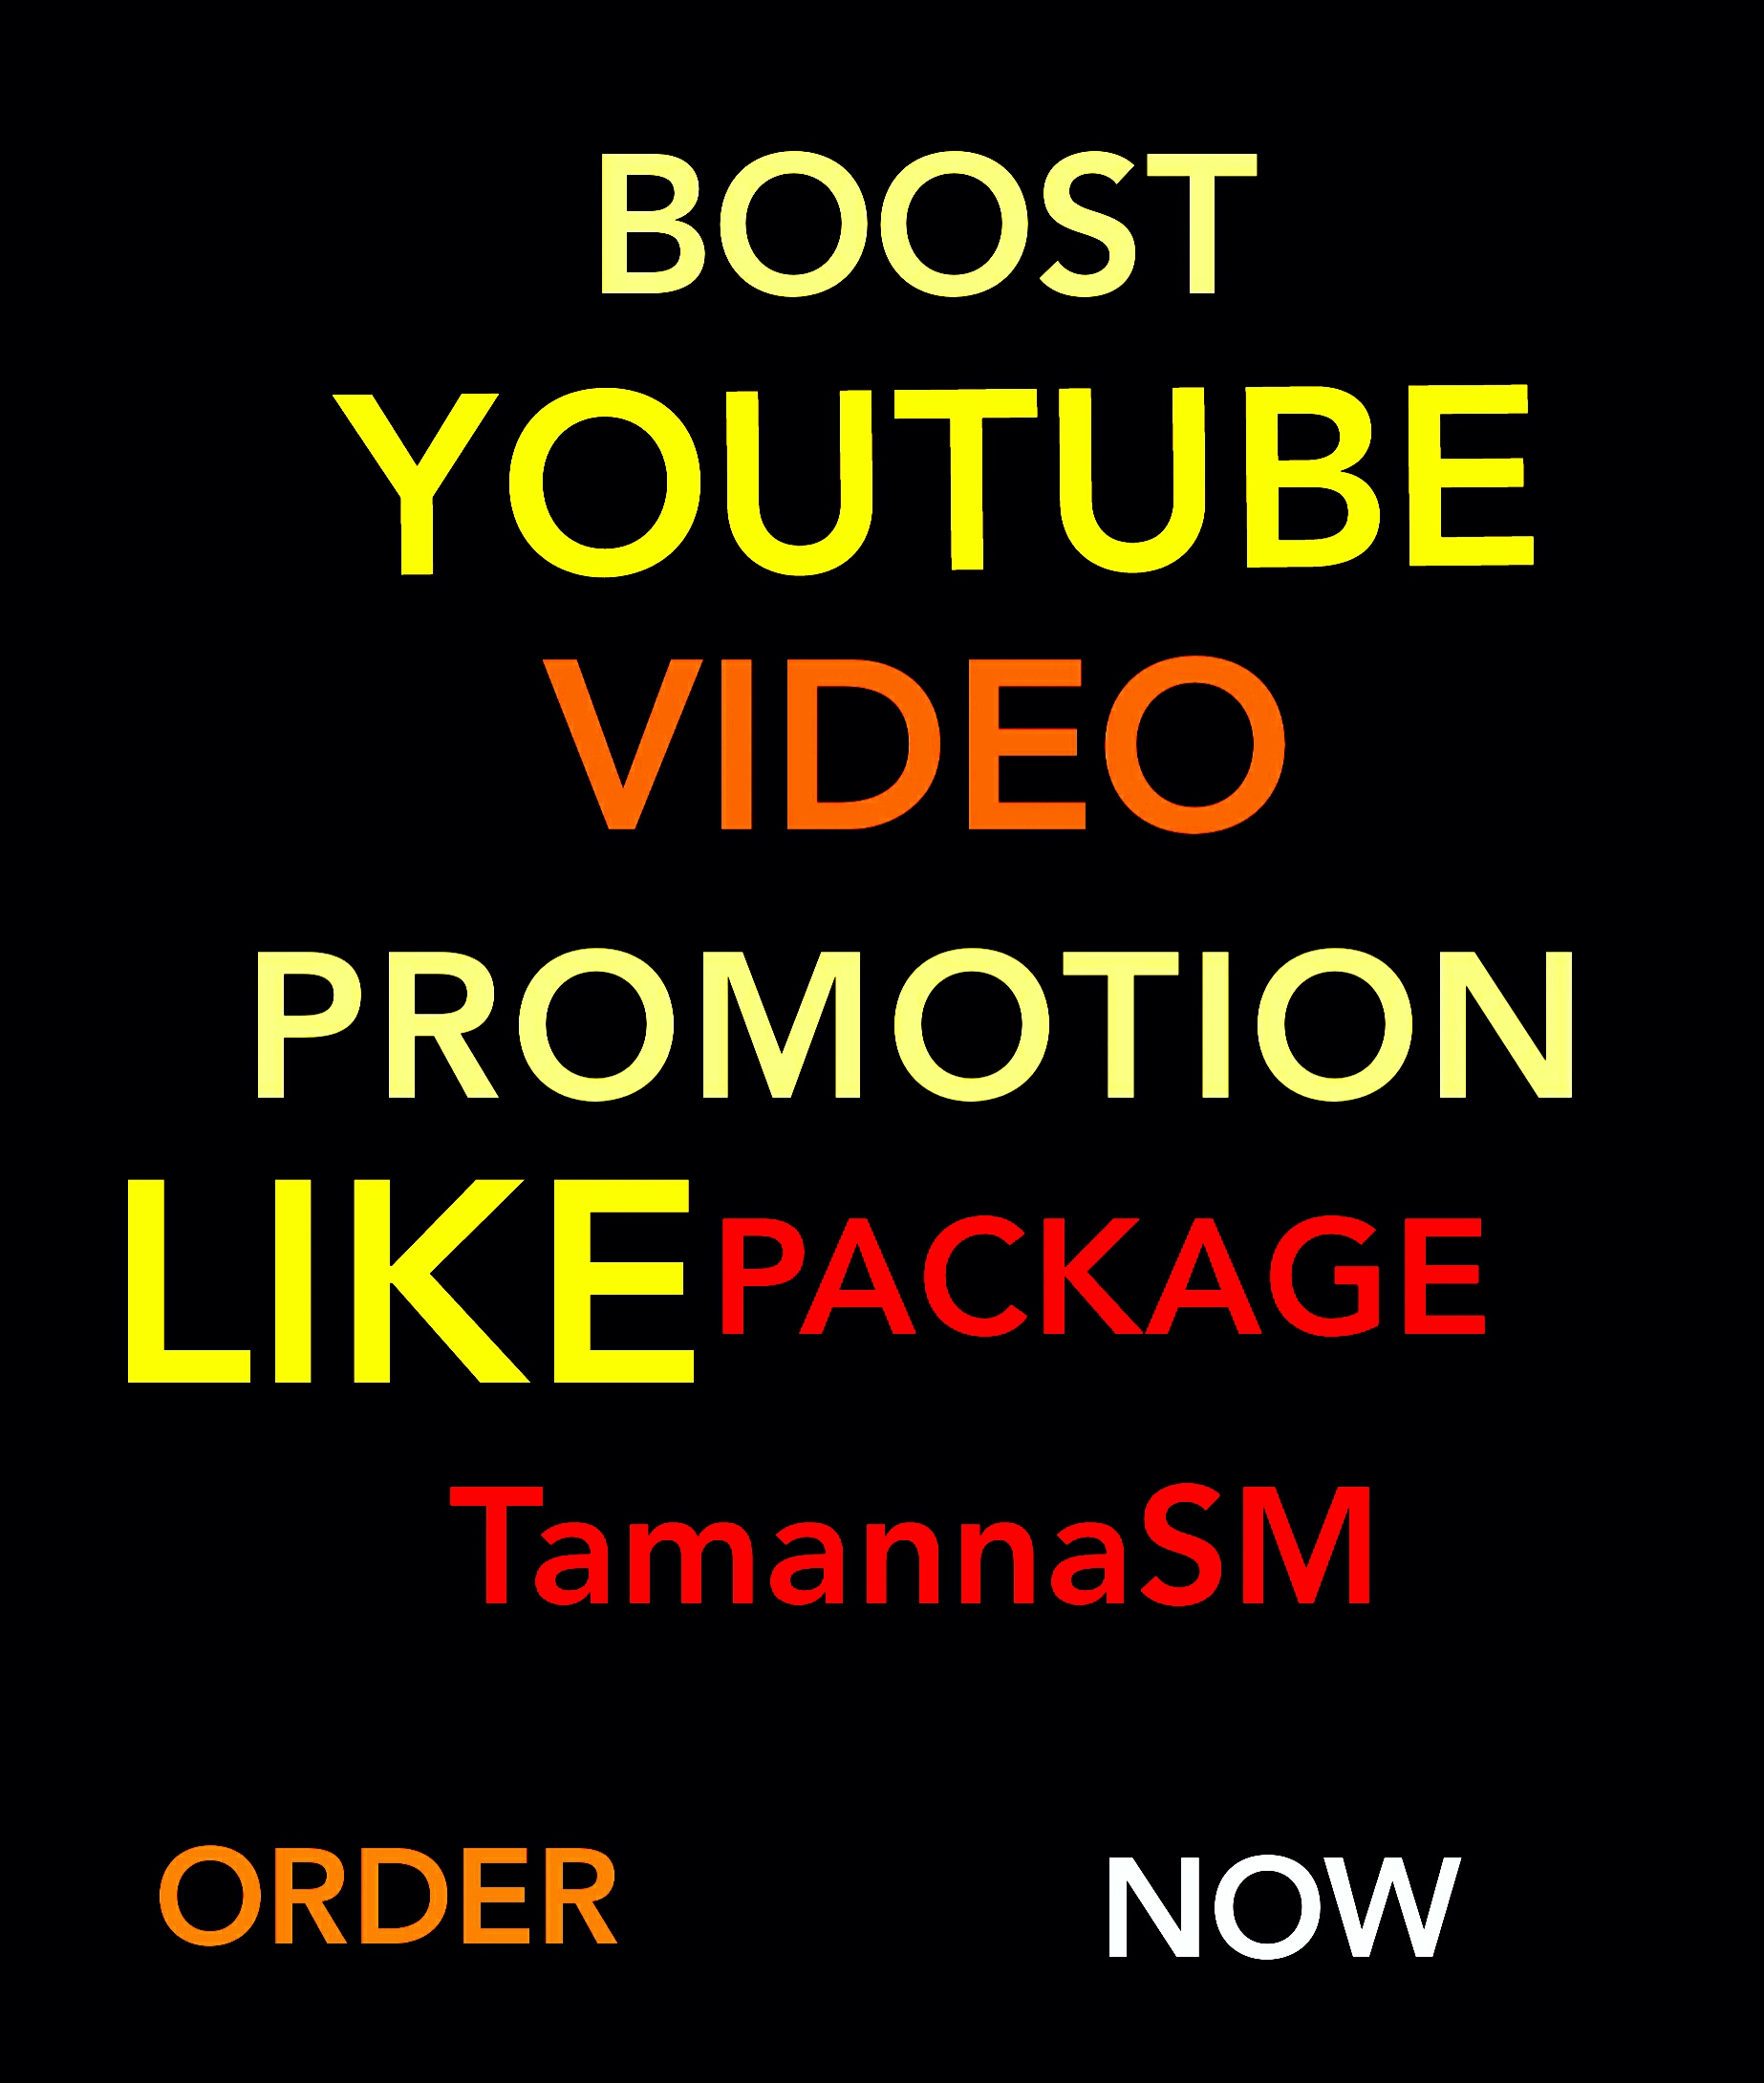 BOOST YOUTUBE VIDEO SOCIAL MEDIA MARKETING PROMOTION EXCLUSIVE FAST